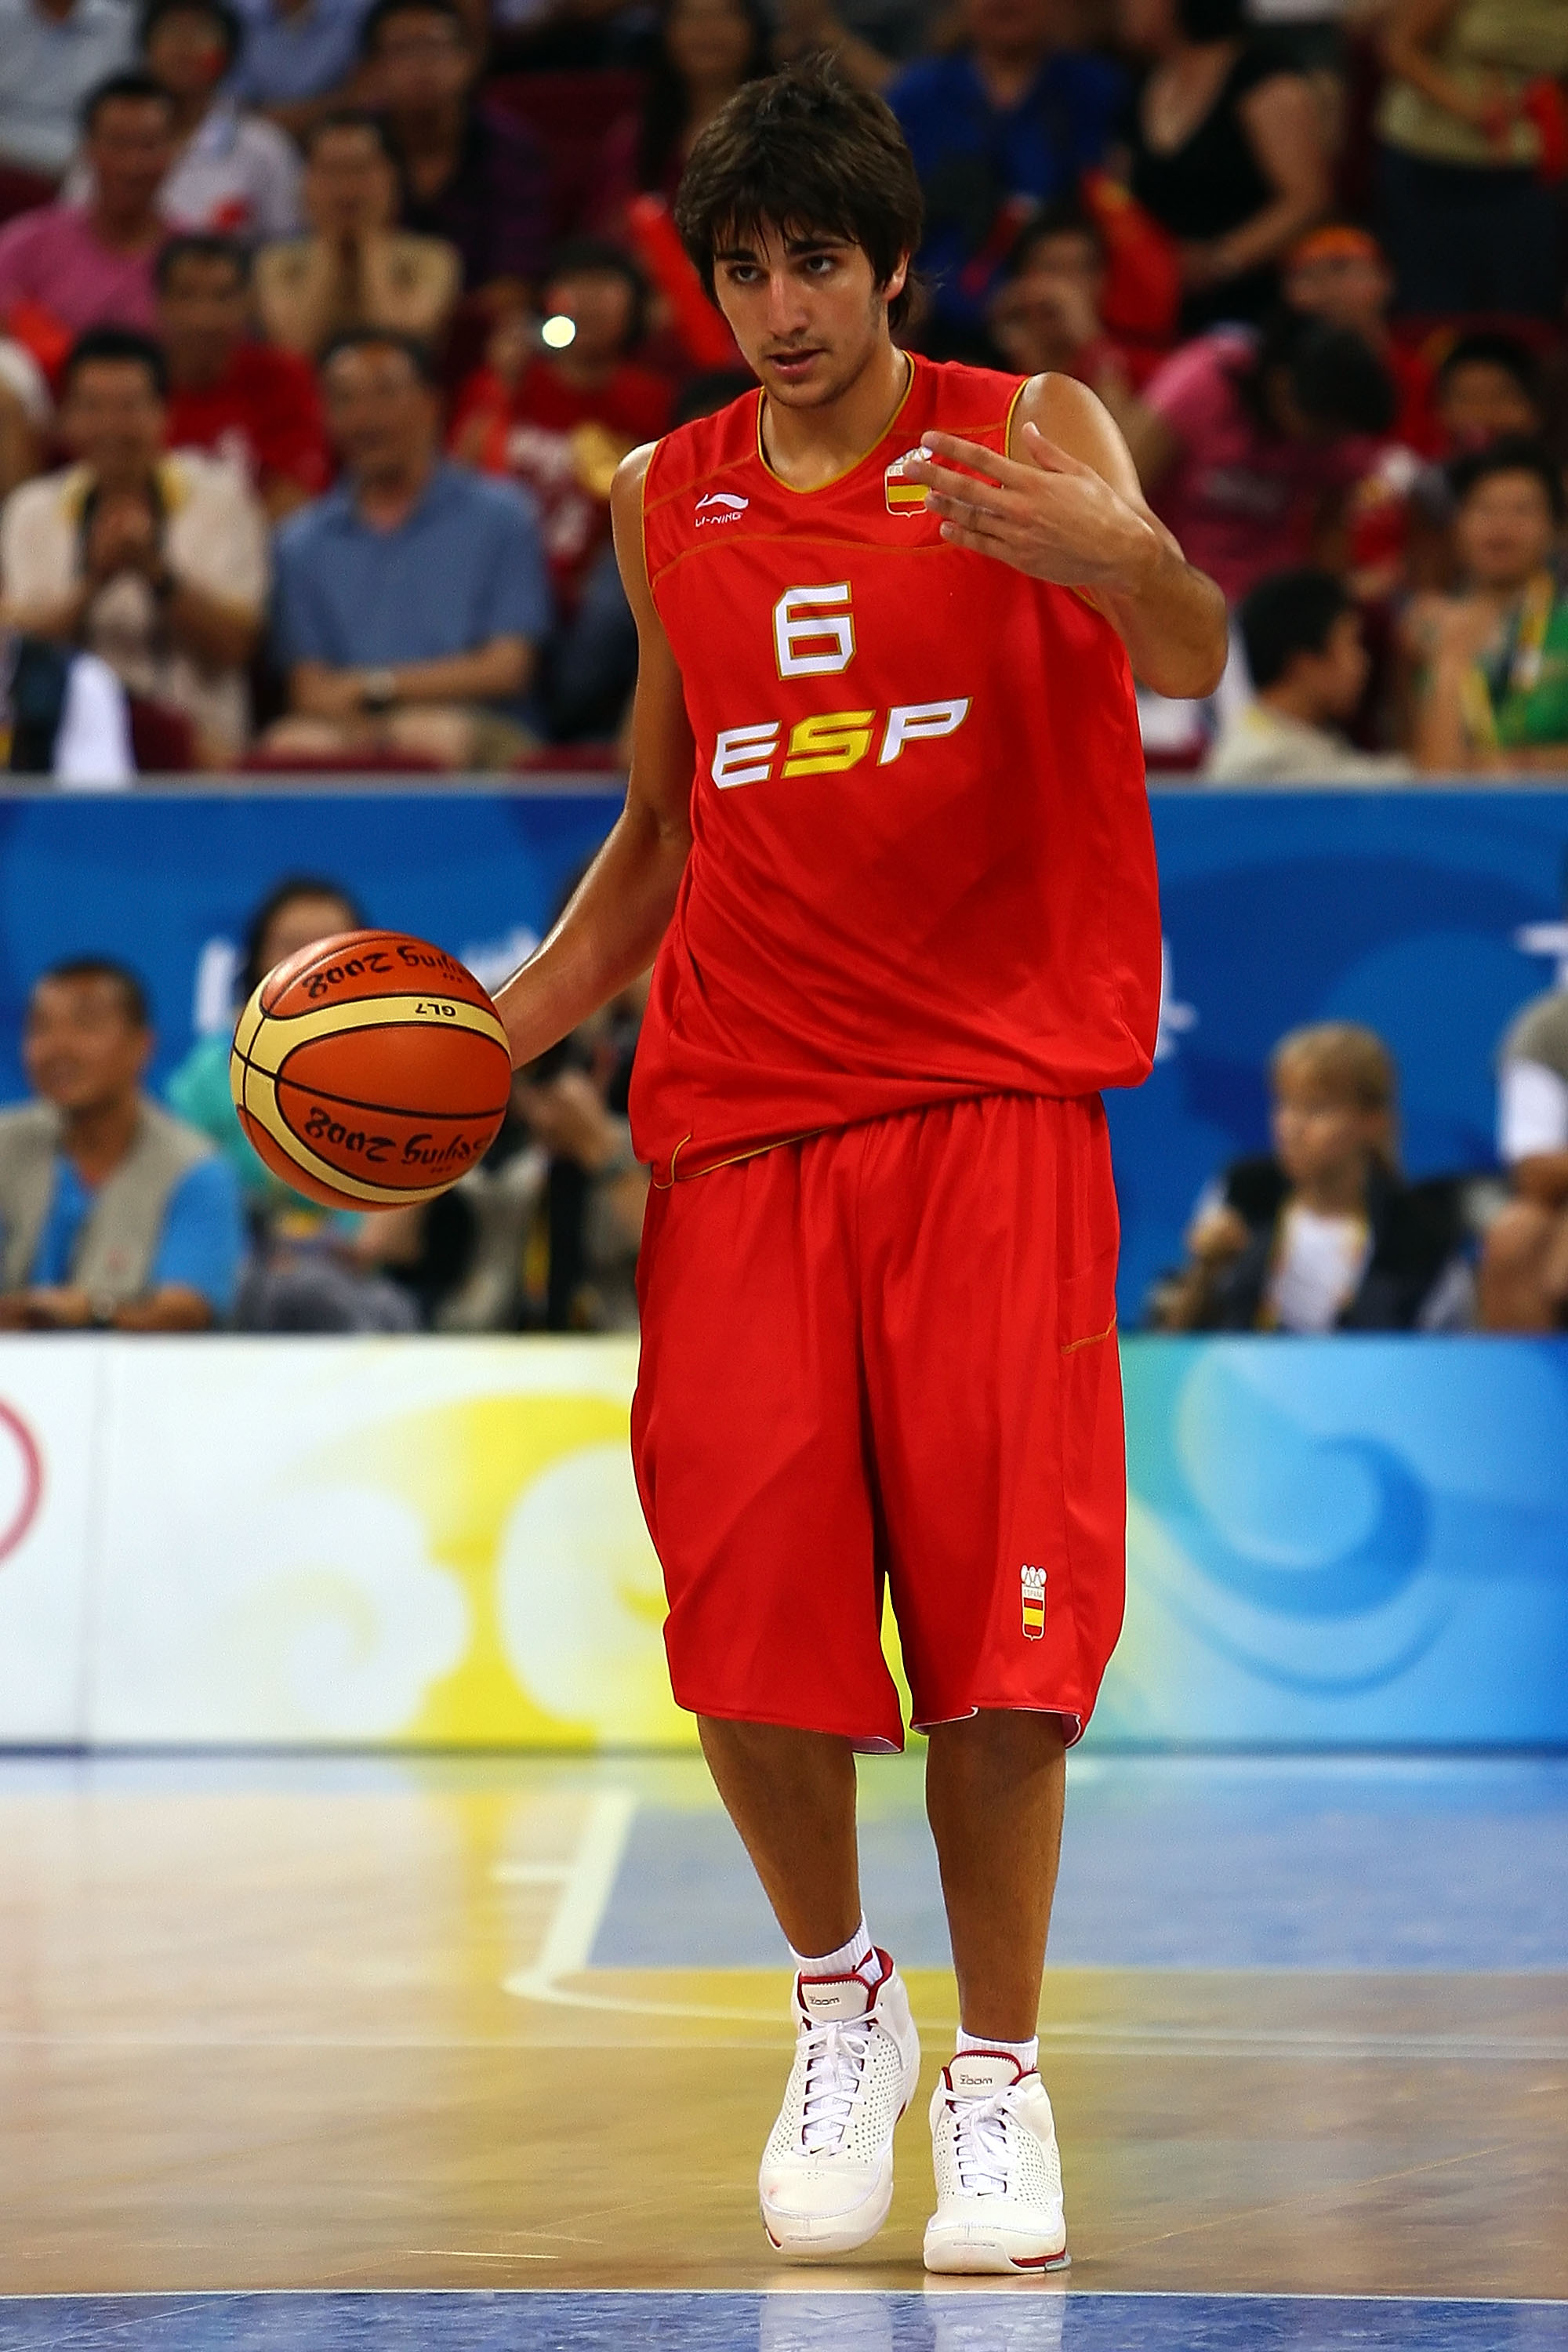 BEIJING - AUGUST 12:  Ricky Rubio #6 of Spain calls a play while taking on China in the preliminary round basketball game held at the Beijing Olympic Basketball Gymnasium during Day 4 of the Beijing 2008 Olympic Games on August 12, 2008 in Beijing, China.